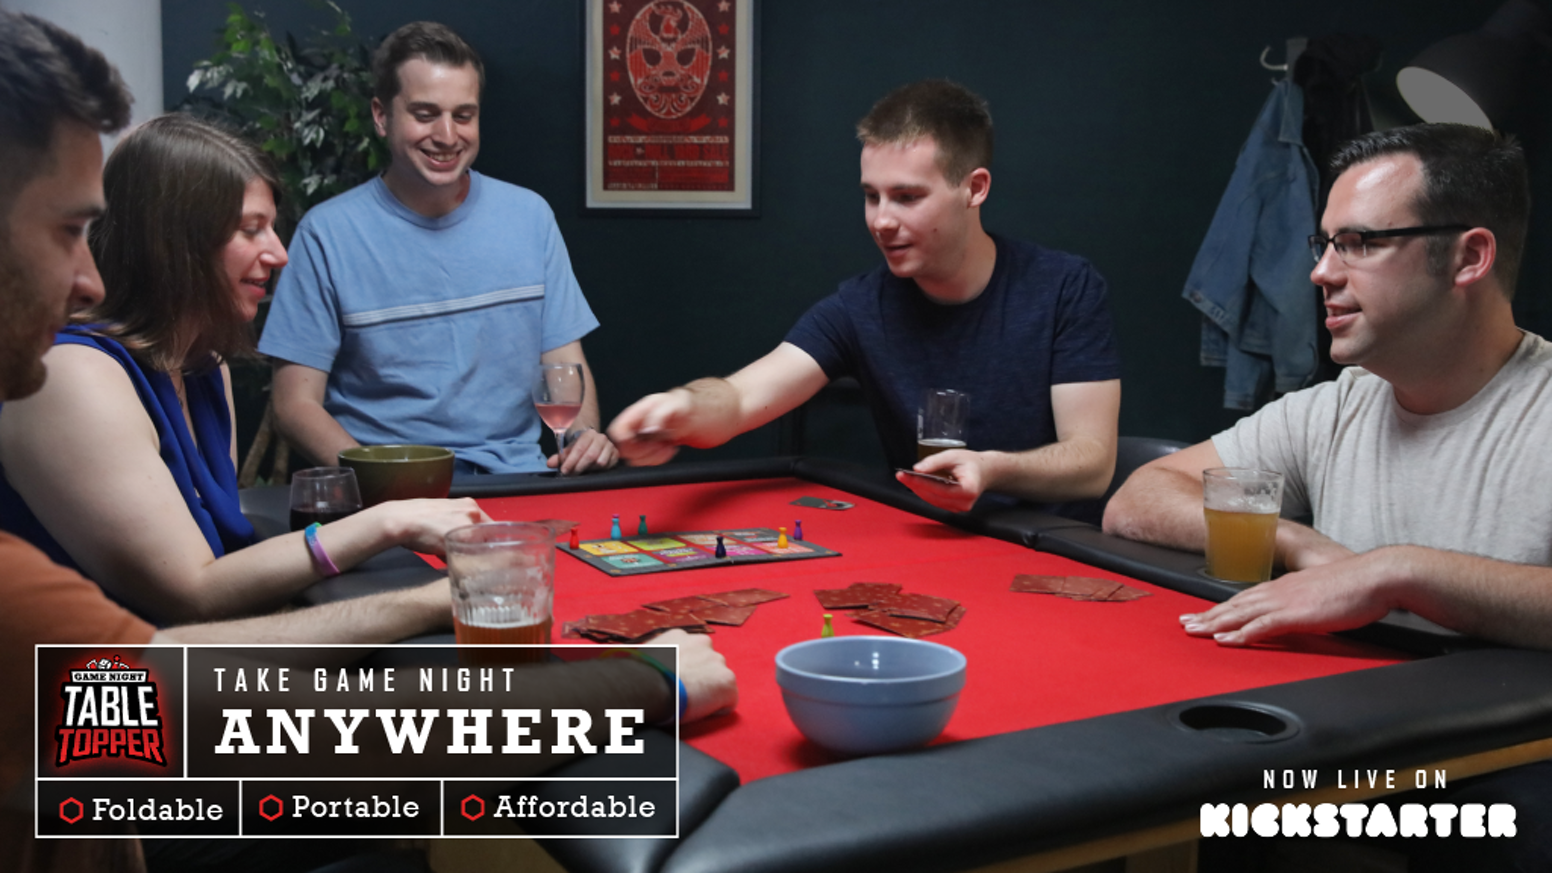 An affordable solution to hosting game night in style!